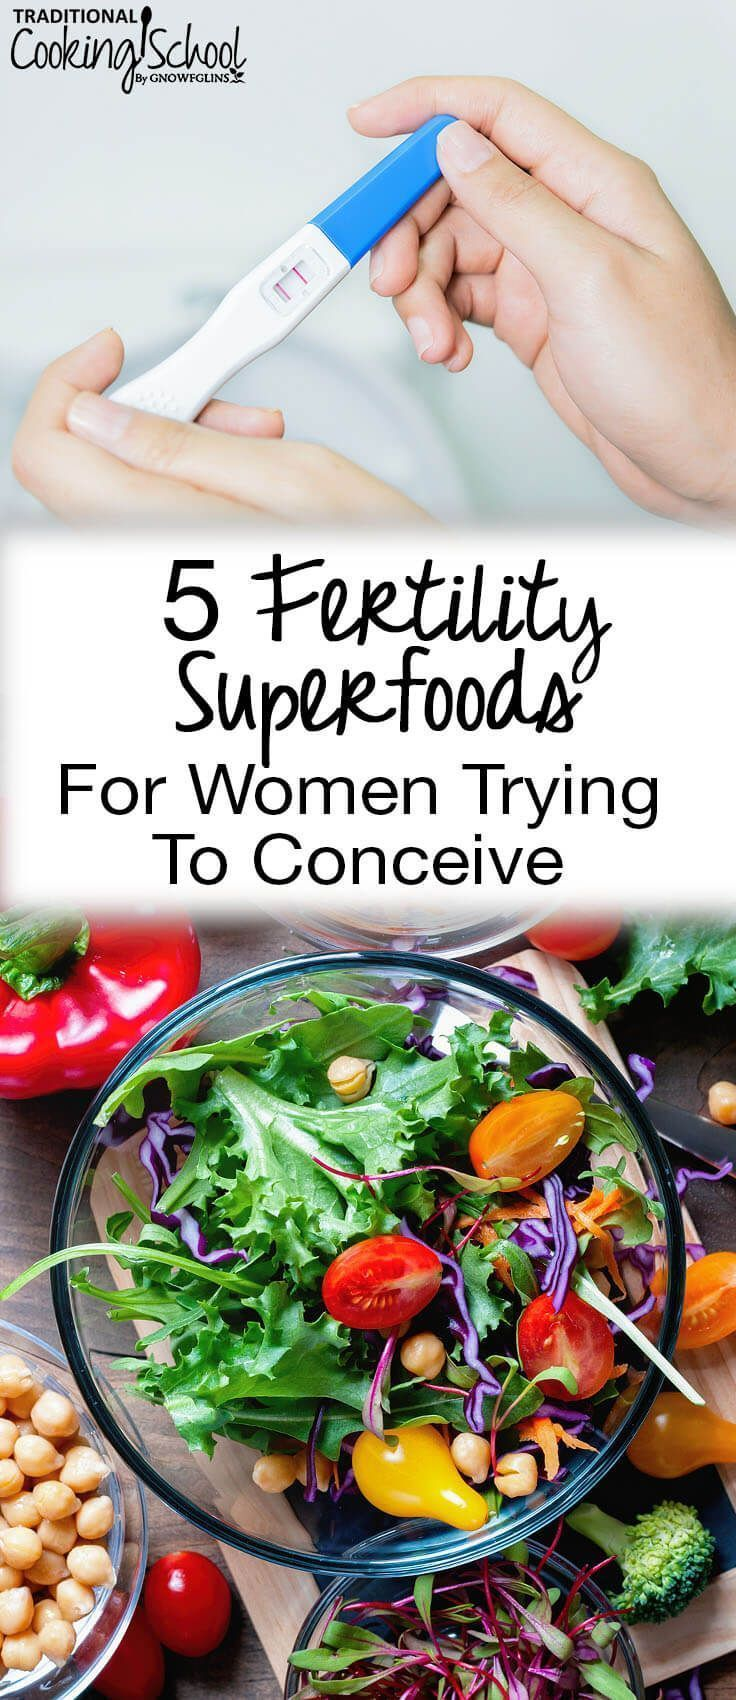 5 Fertility Superfoods For Women Trying To Conceive | Cooking for fertility  (fertility diet recipes) | Pinterest | Fertility, Fertility diet and  Pregnancy